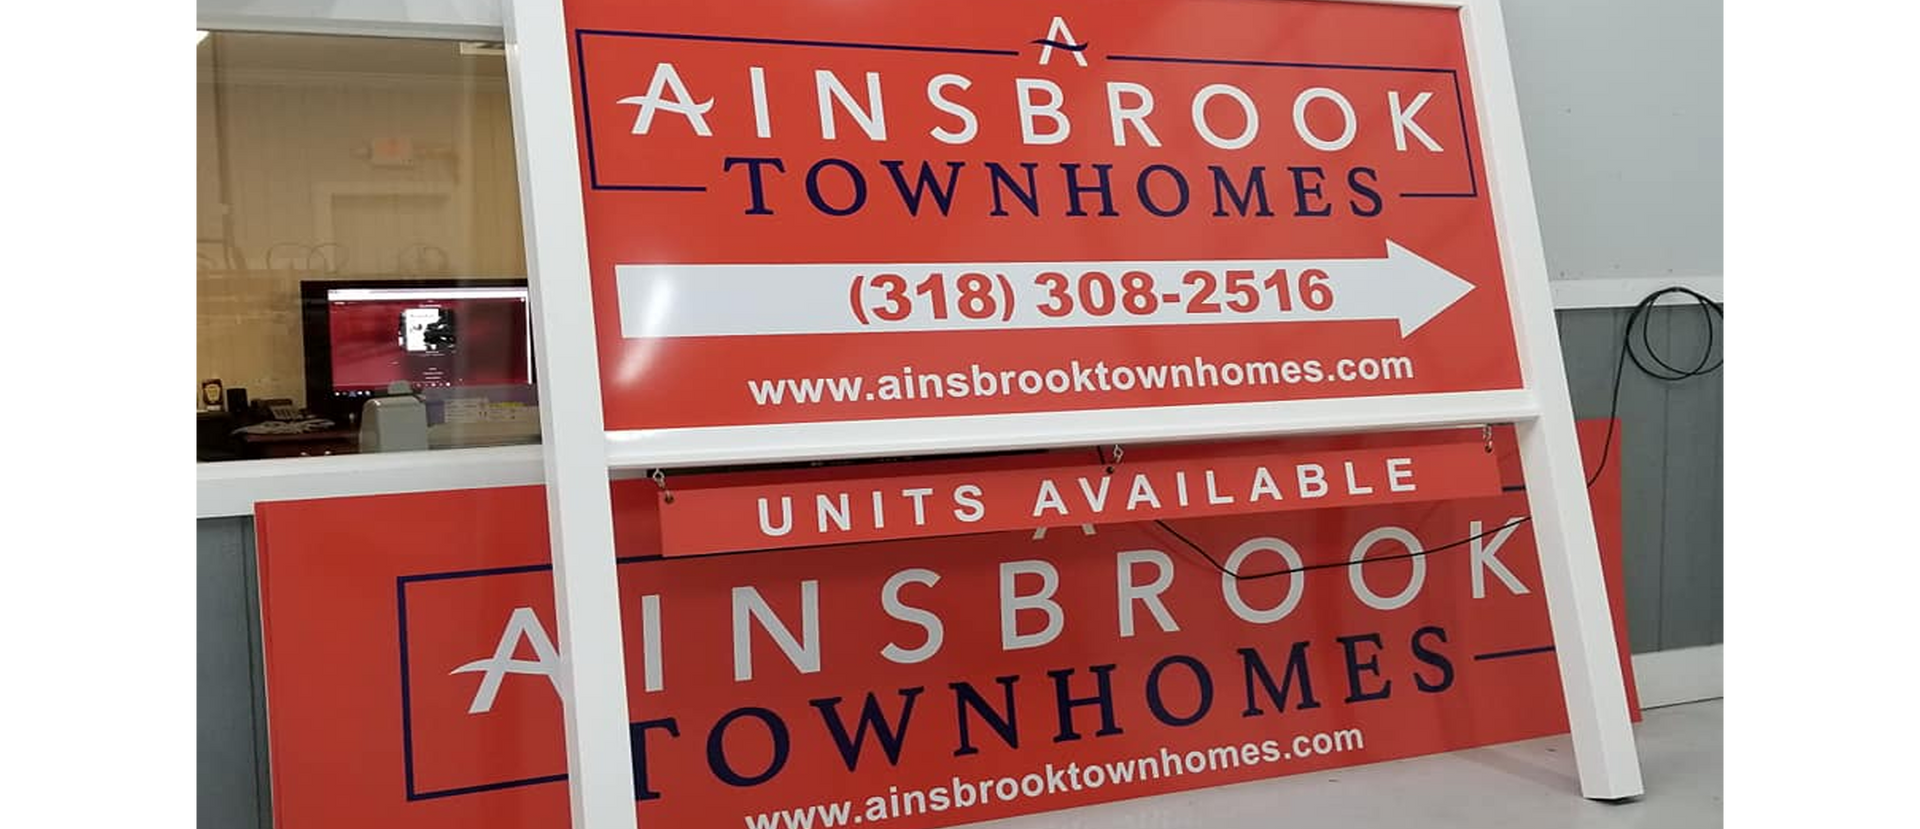 ainsbrook townhomes.png